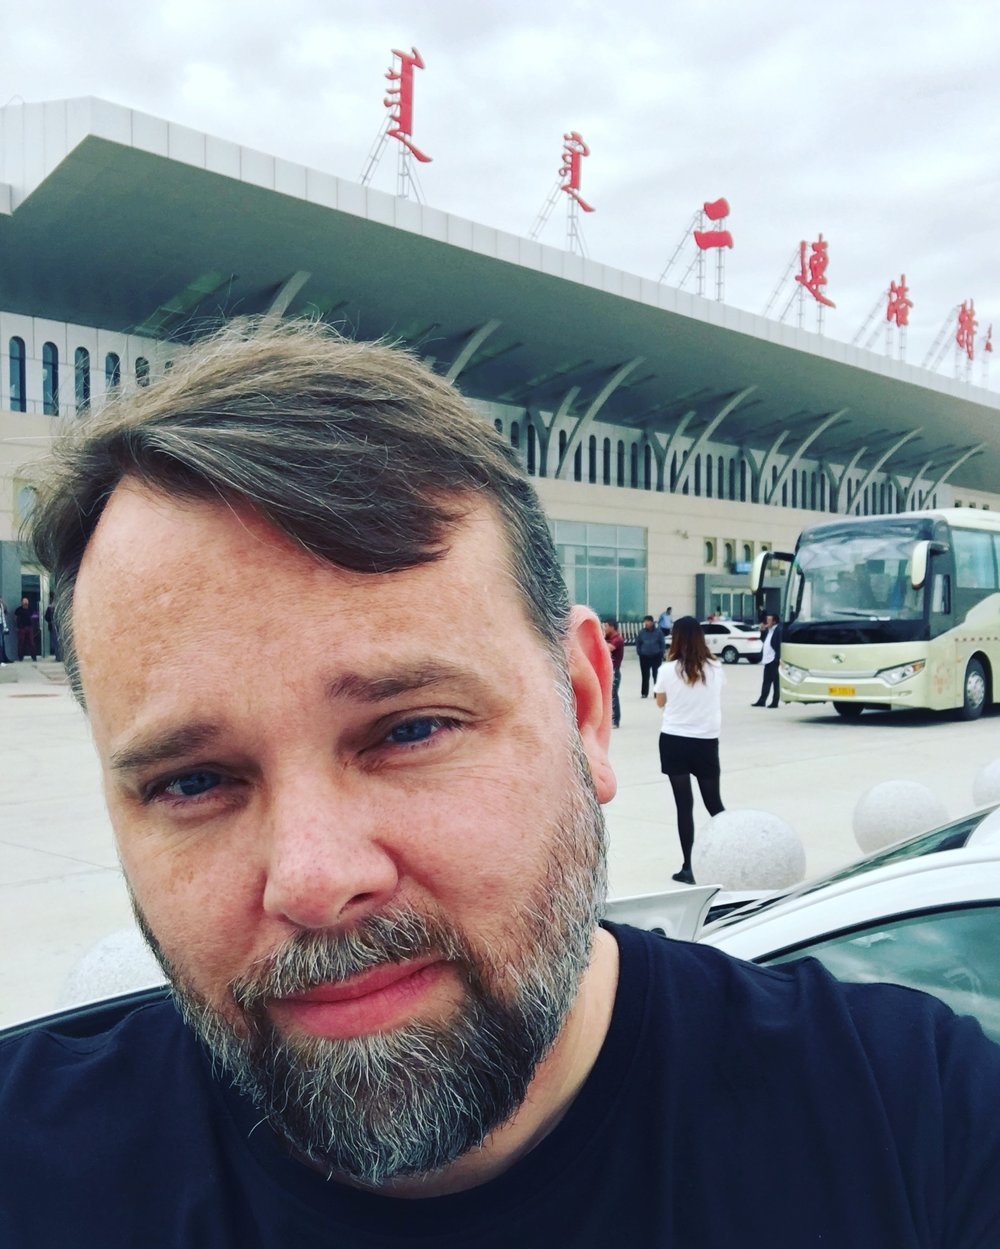 At the airport. Erenhot, China. August 30, 2016